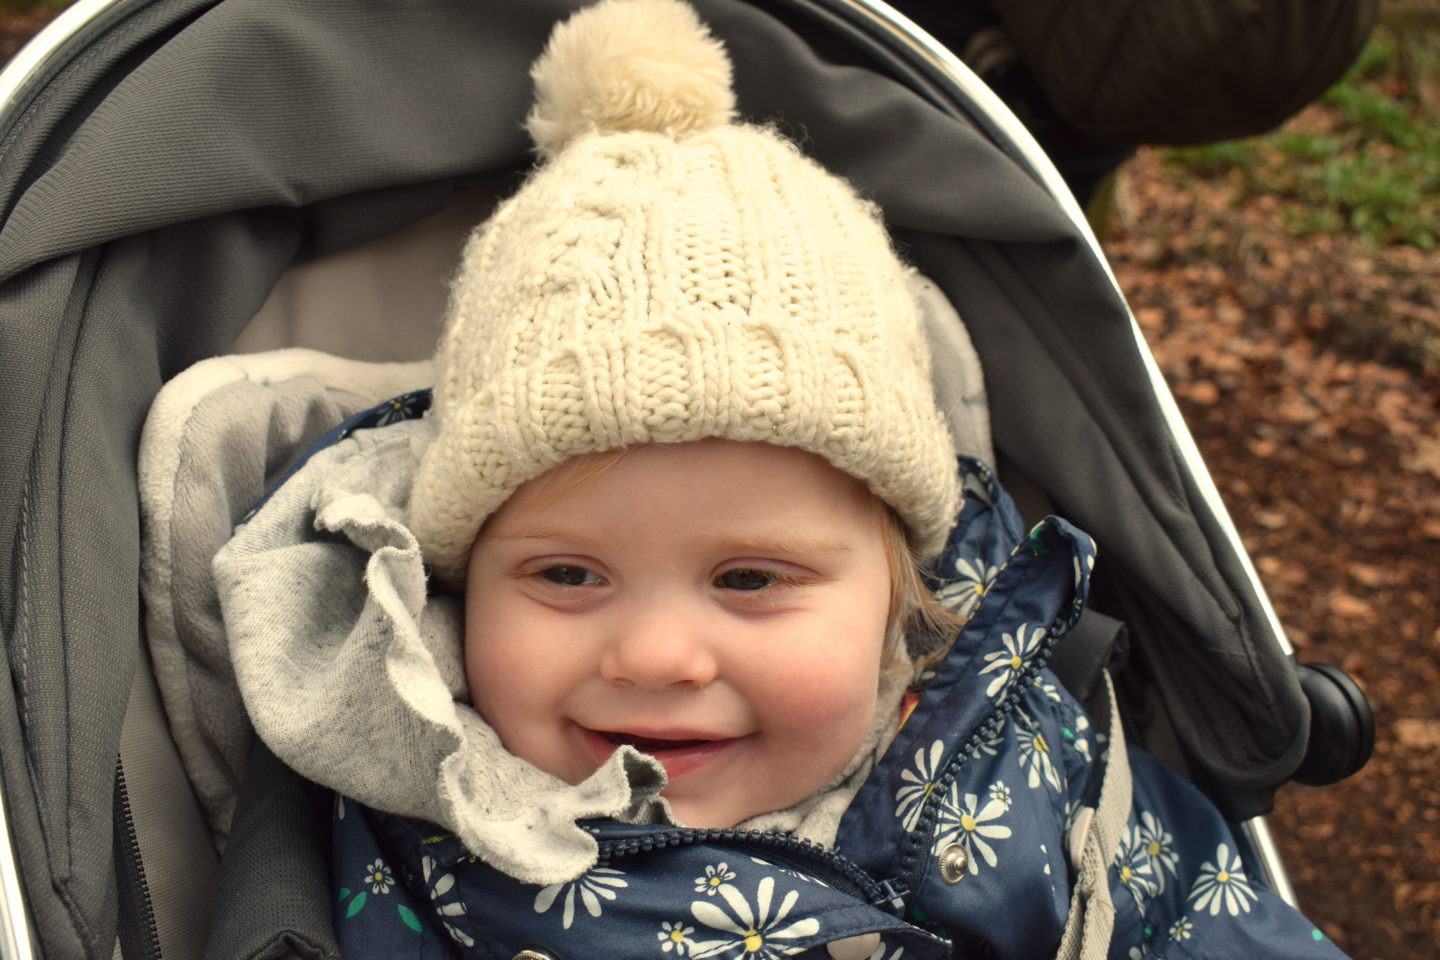 14 months old girl with bobble hat, sitting in pram, smiling